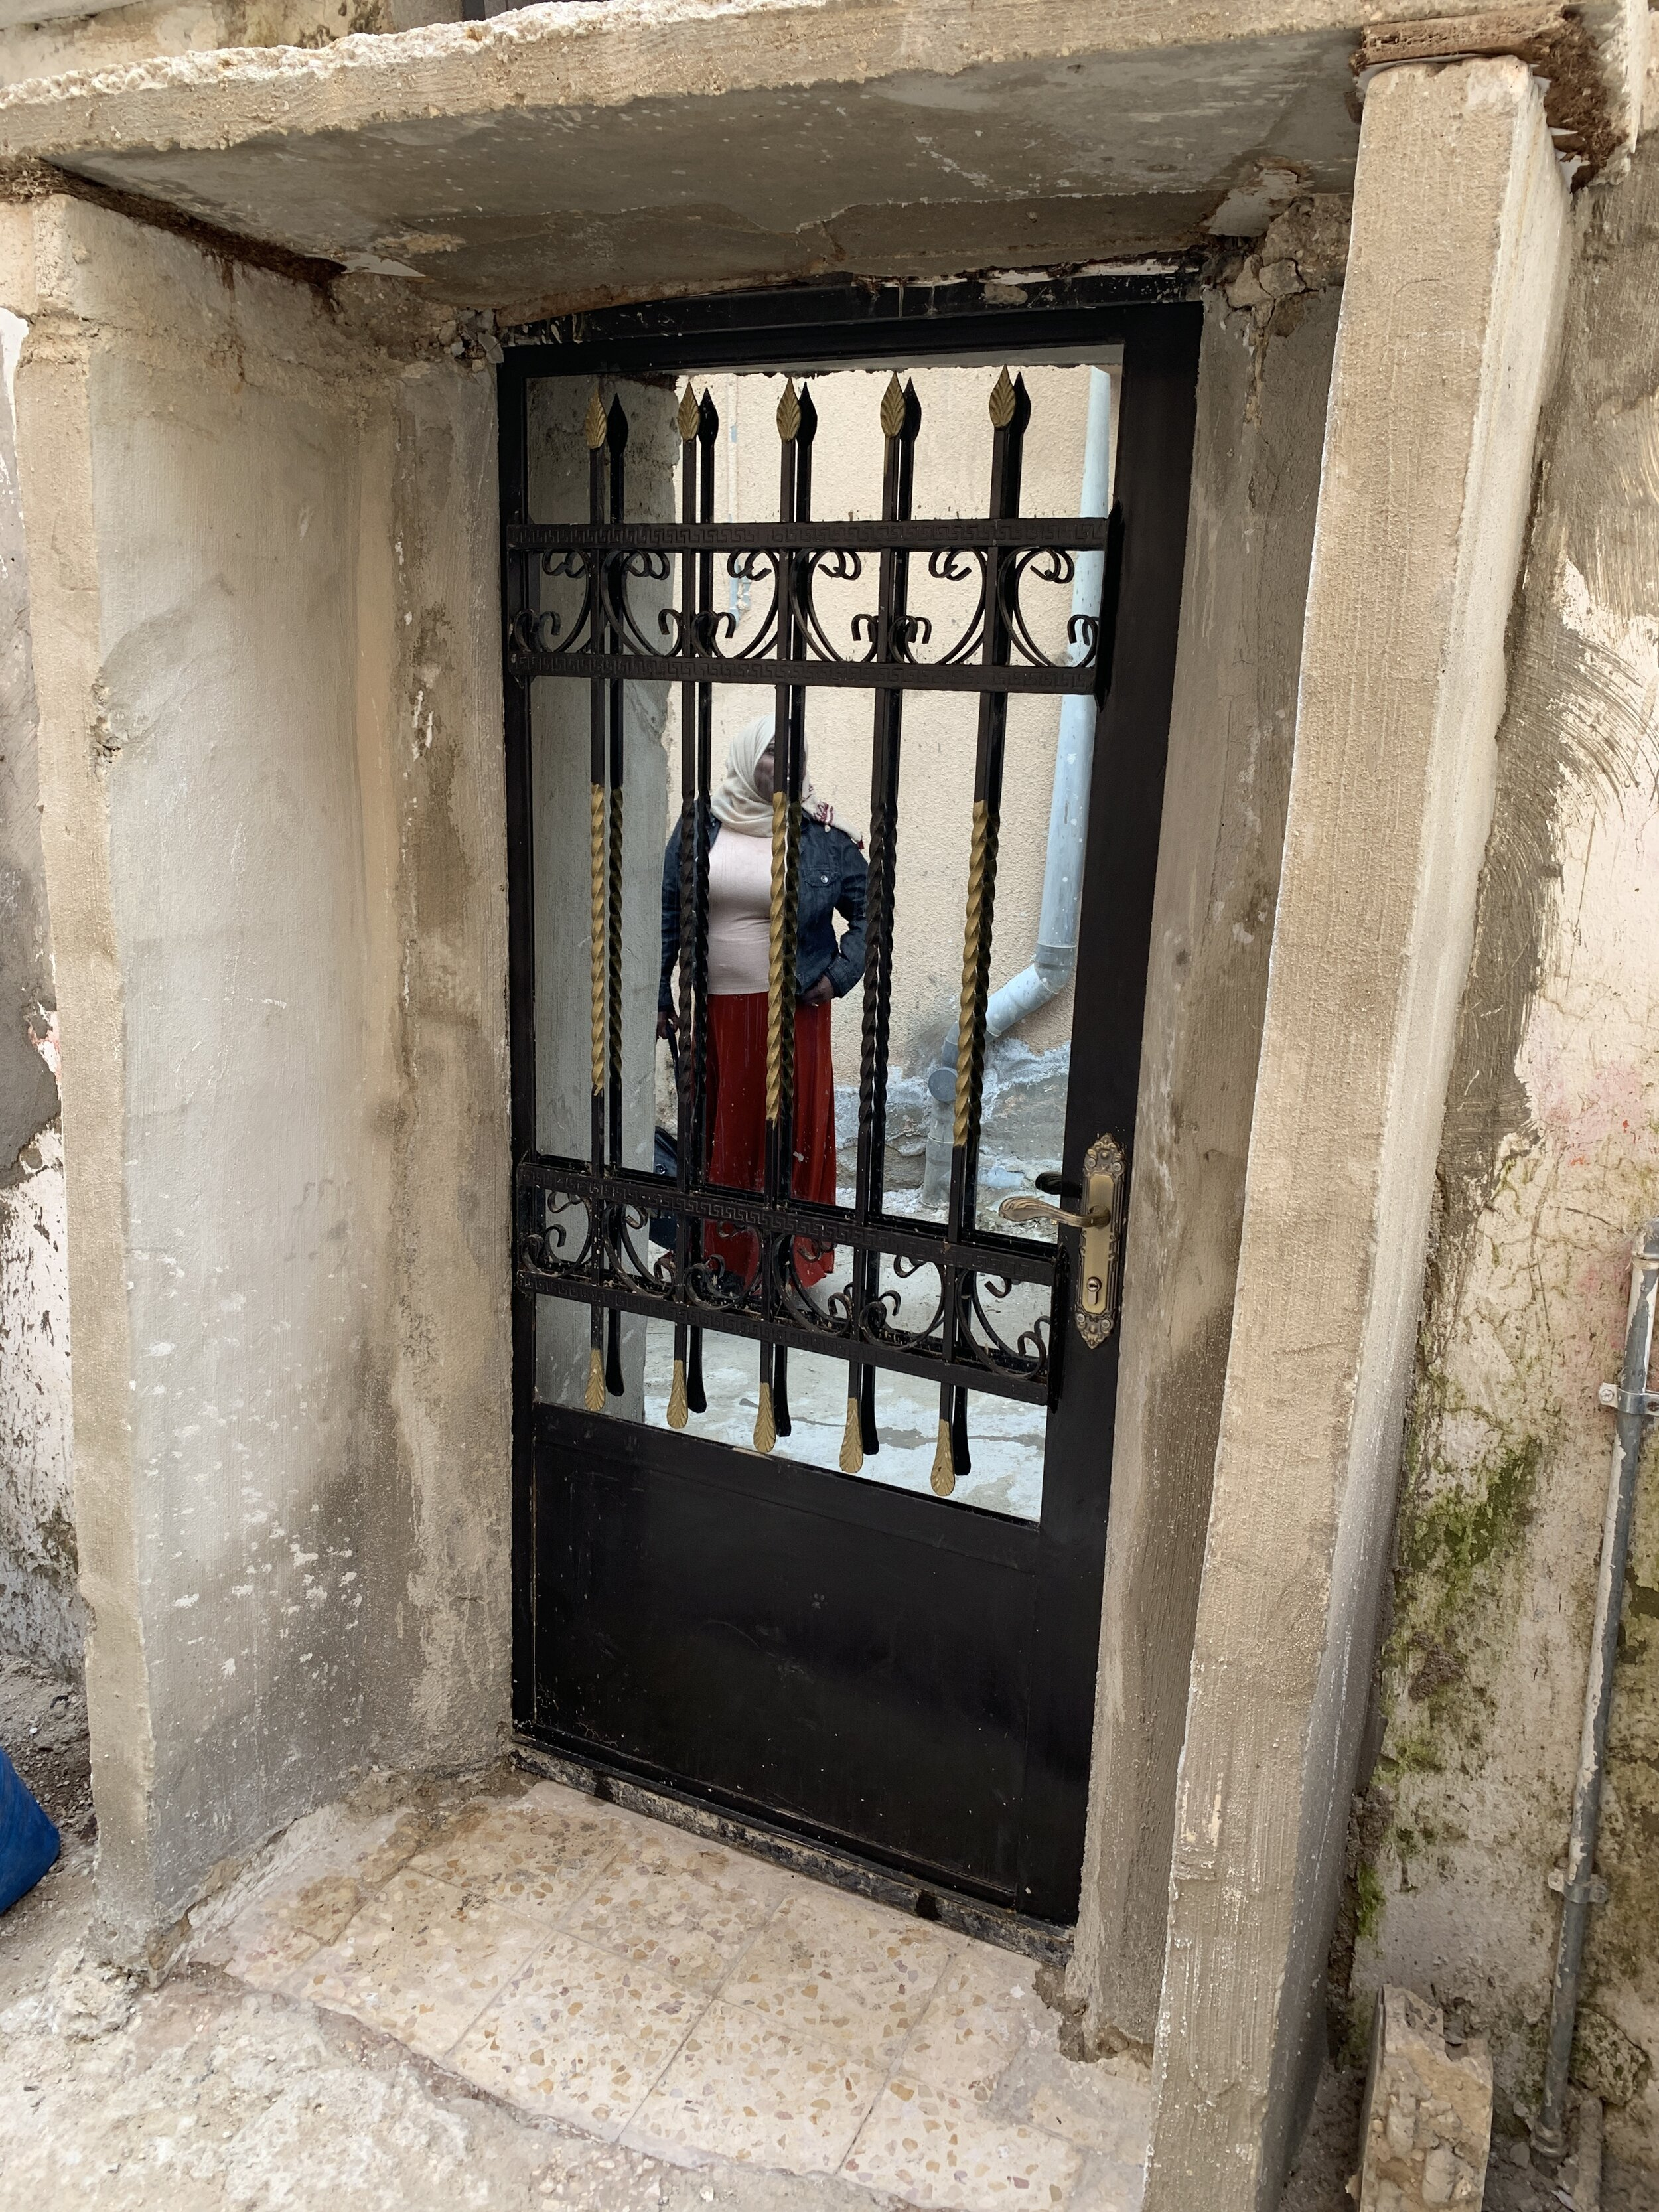 After - A new door with mirror glass and that locks properly!